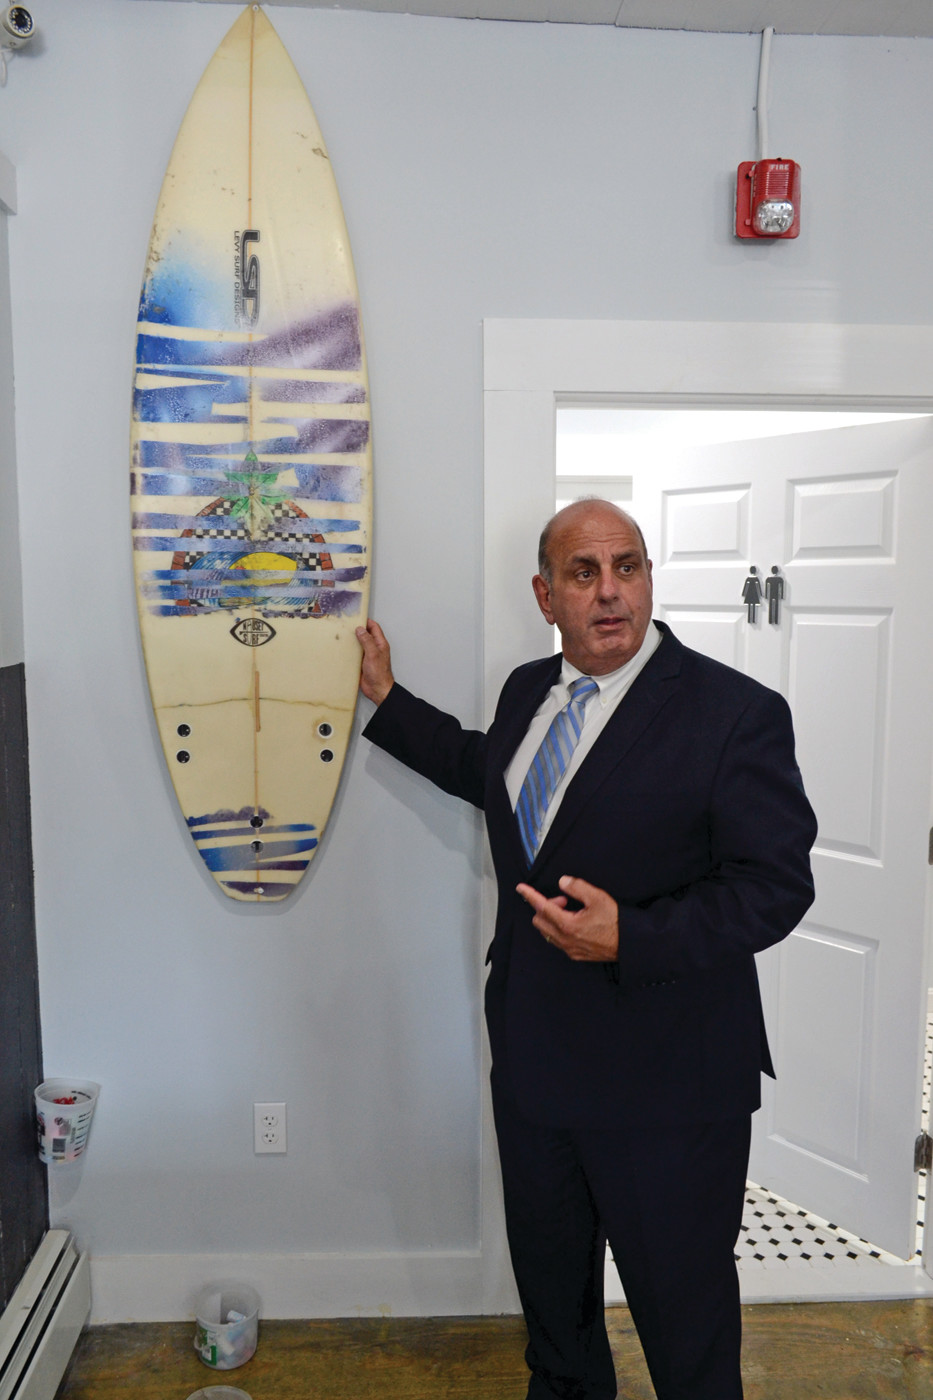 SURFS UP: Mayor Solomon inquires if he can get a surfboard on the wall of his office at Warwick City Hall.